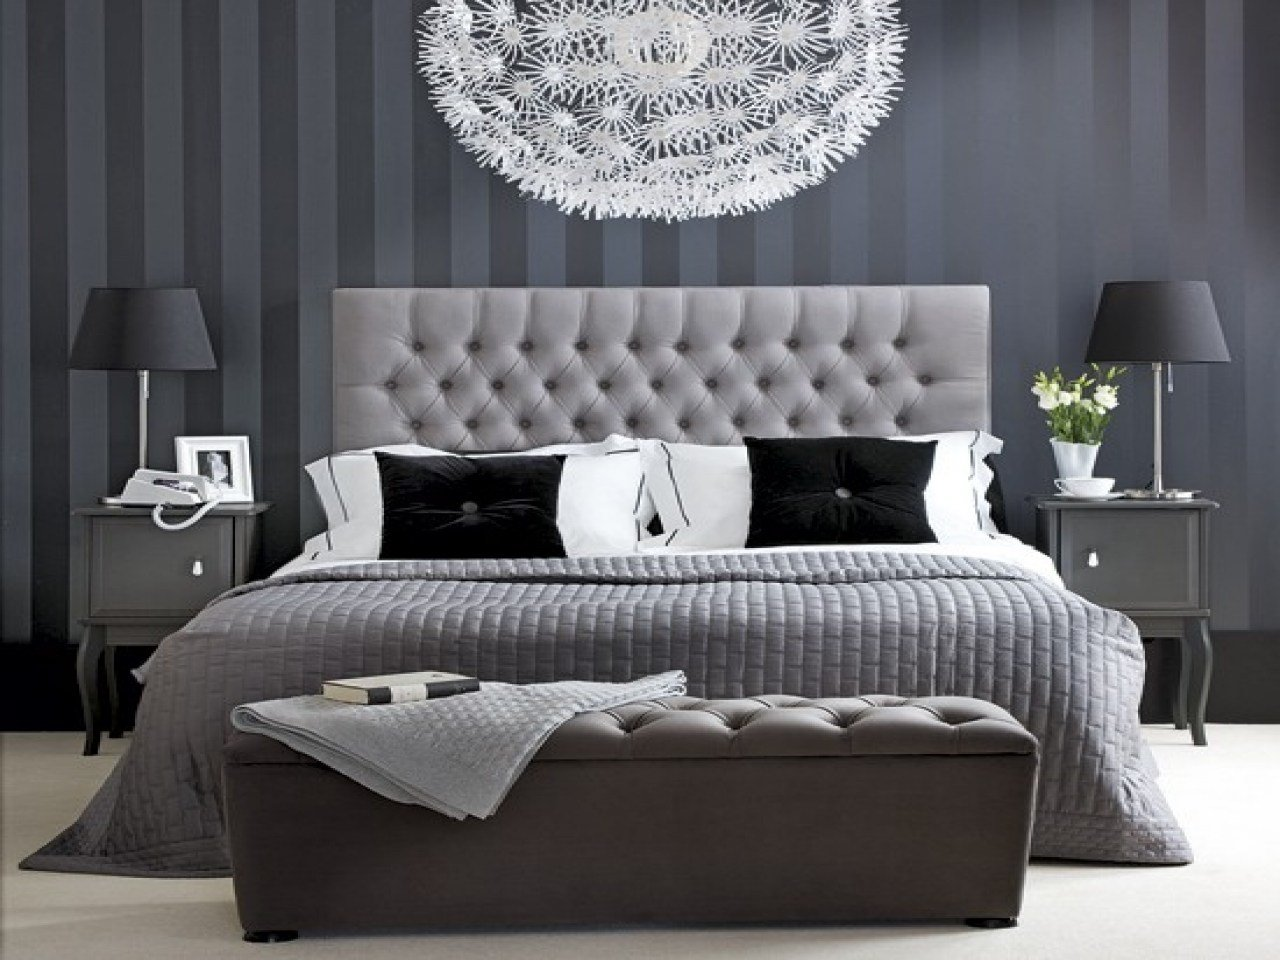 Best Hotel Chic Bedroom Black White And Grey Bedroom Ideas With Pictures